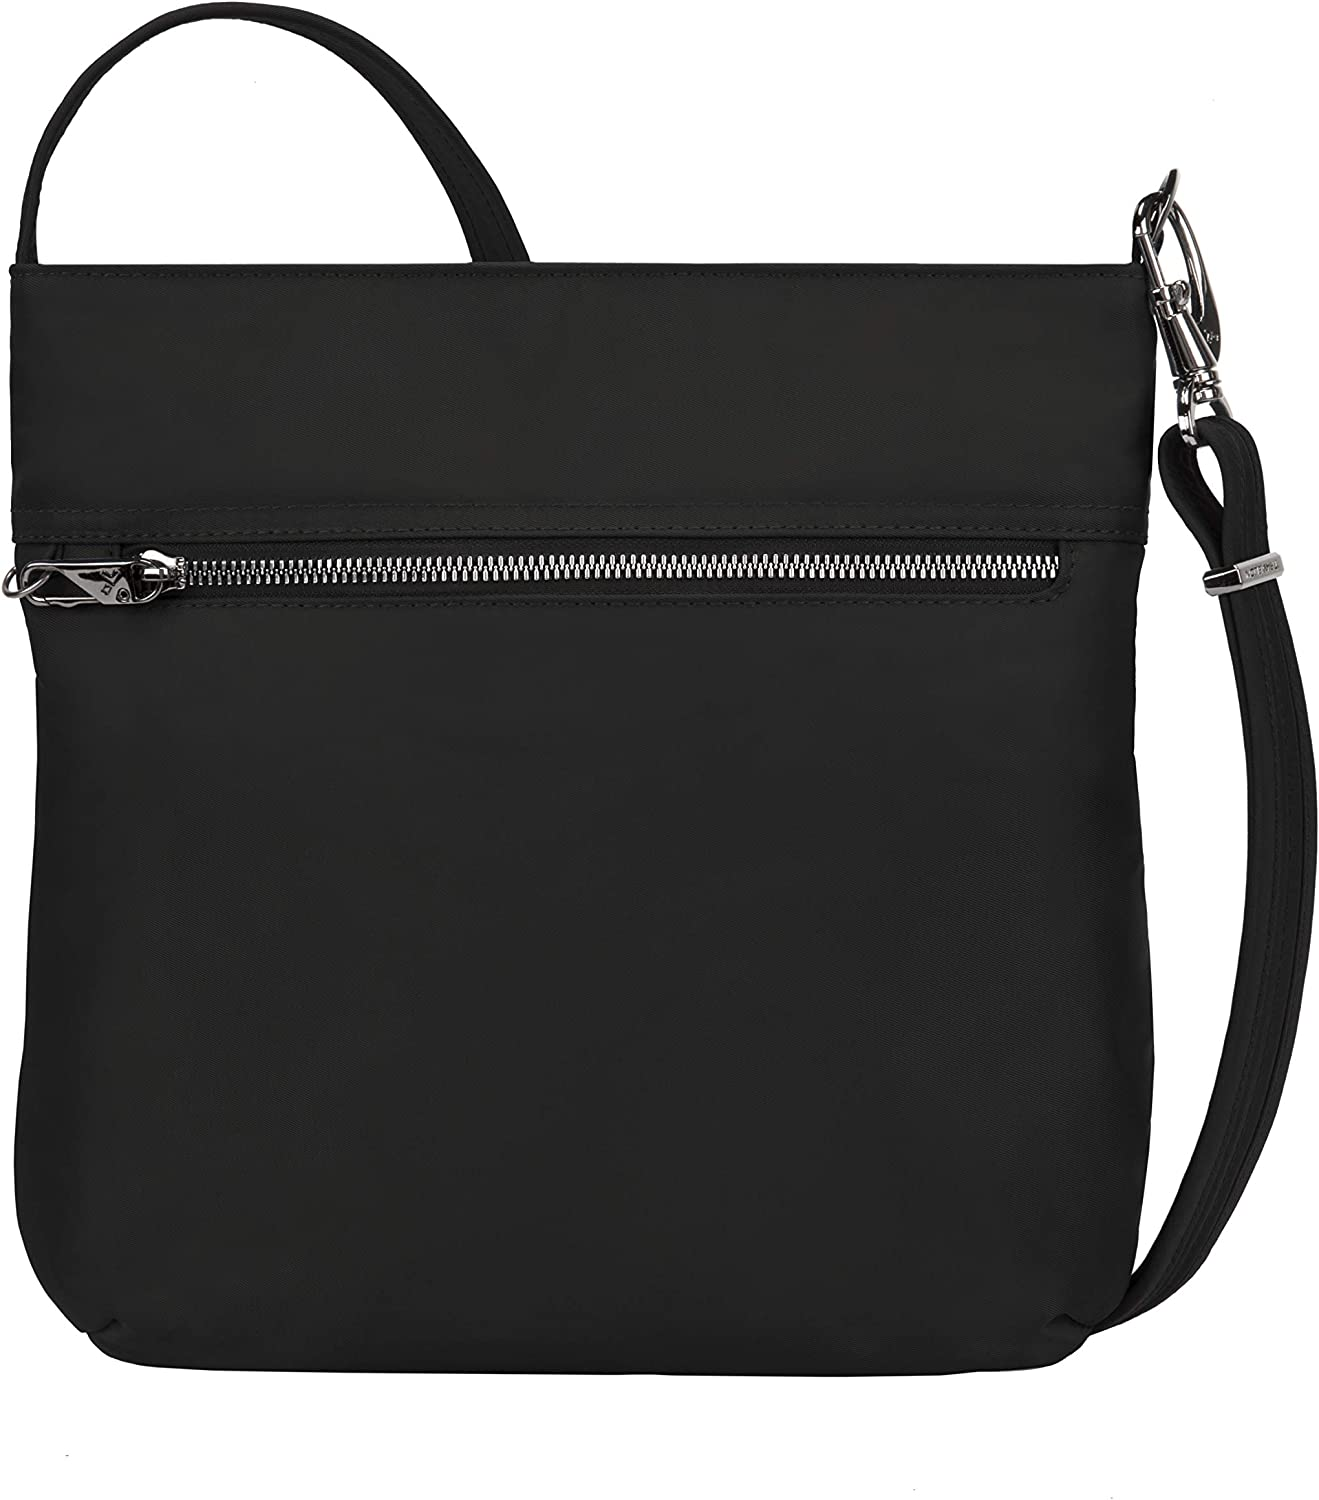 Book Anti Theft Peacock Messenger Bags for Teens Travel Organizing Phone Tablet